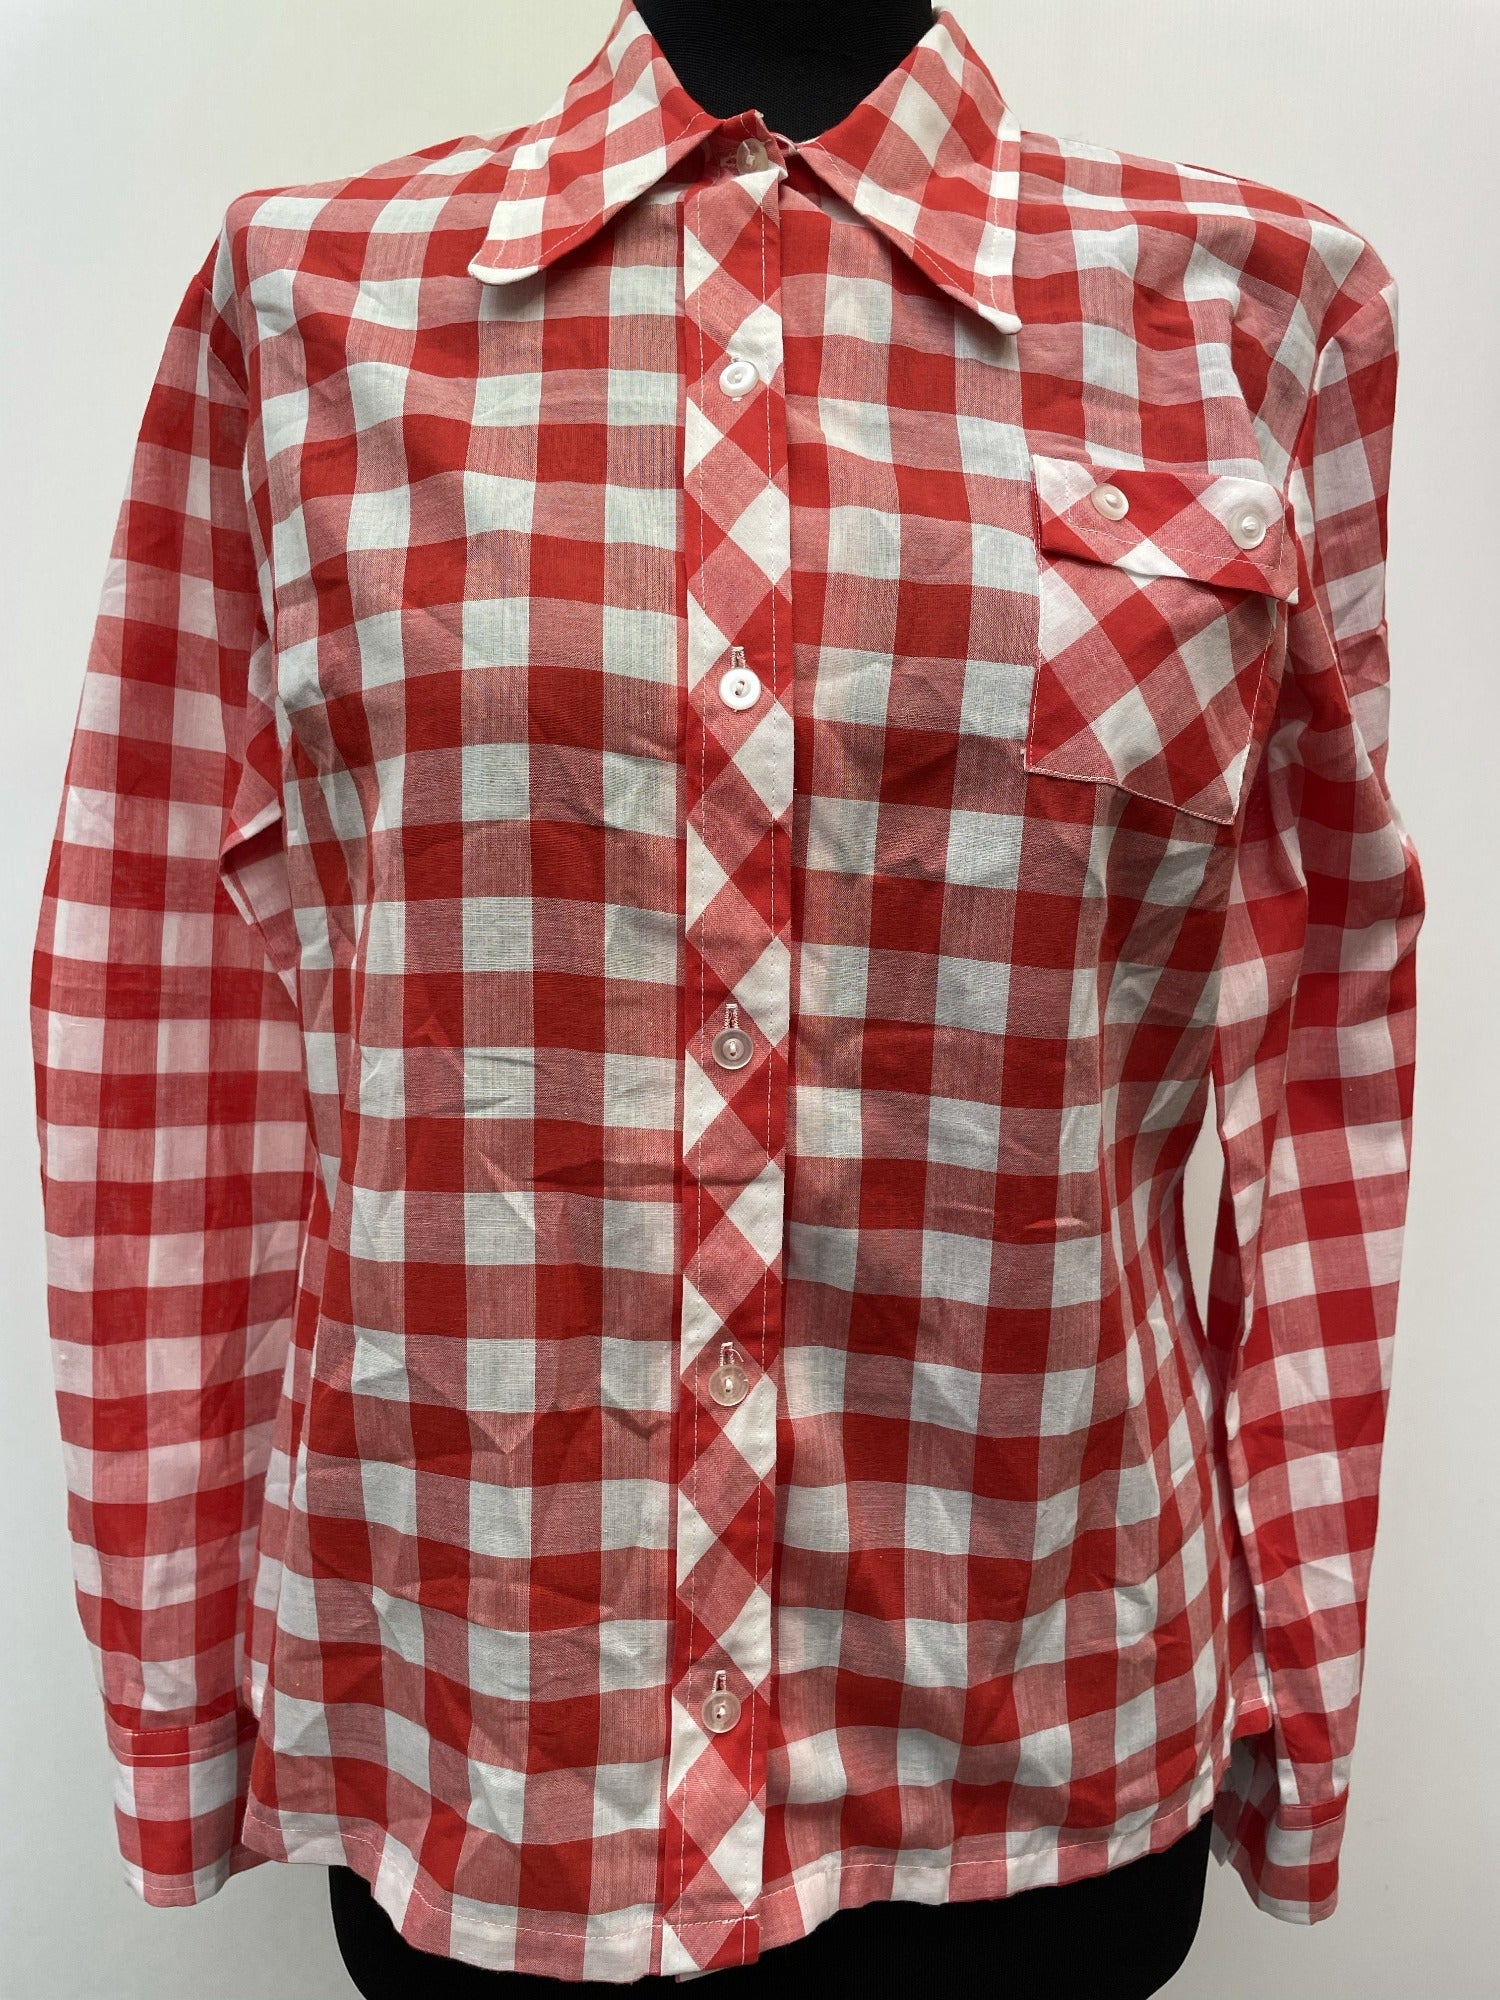 womens shirt  white  vintage  Urban Village Vintage  summer  Shirt  Red  polyester  large check  disco  crop shirt  Cotton  collar  checkered  checked  check shirt  check lining  button down  button  big collar  70  1970s  16